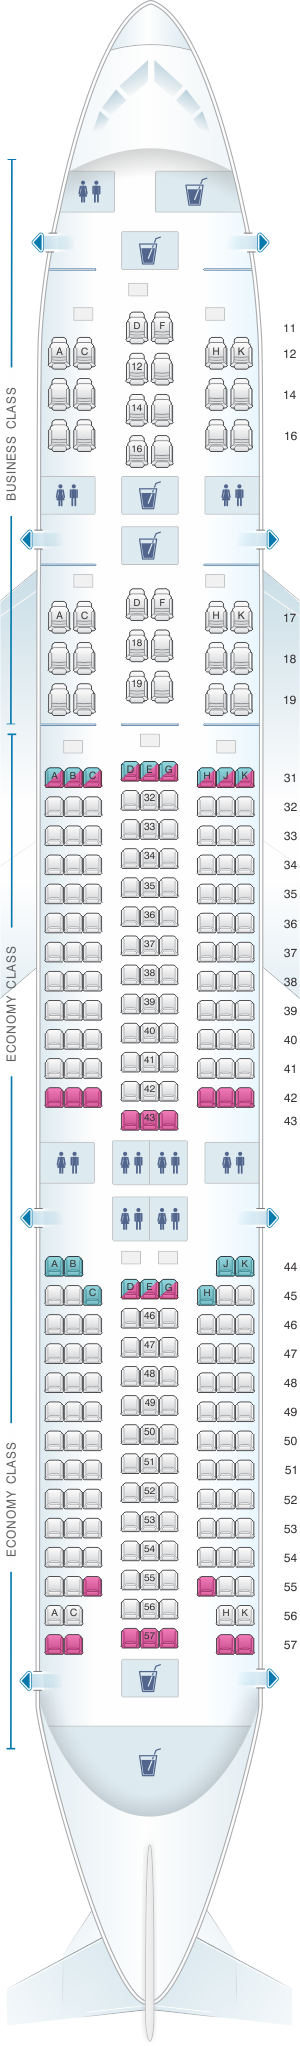 Seat map for Singapore Airlines Boeing B777 200 SR Series